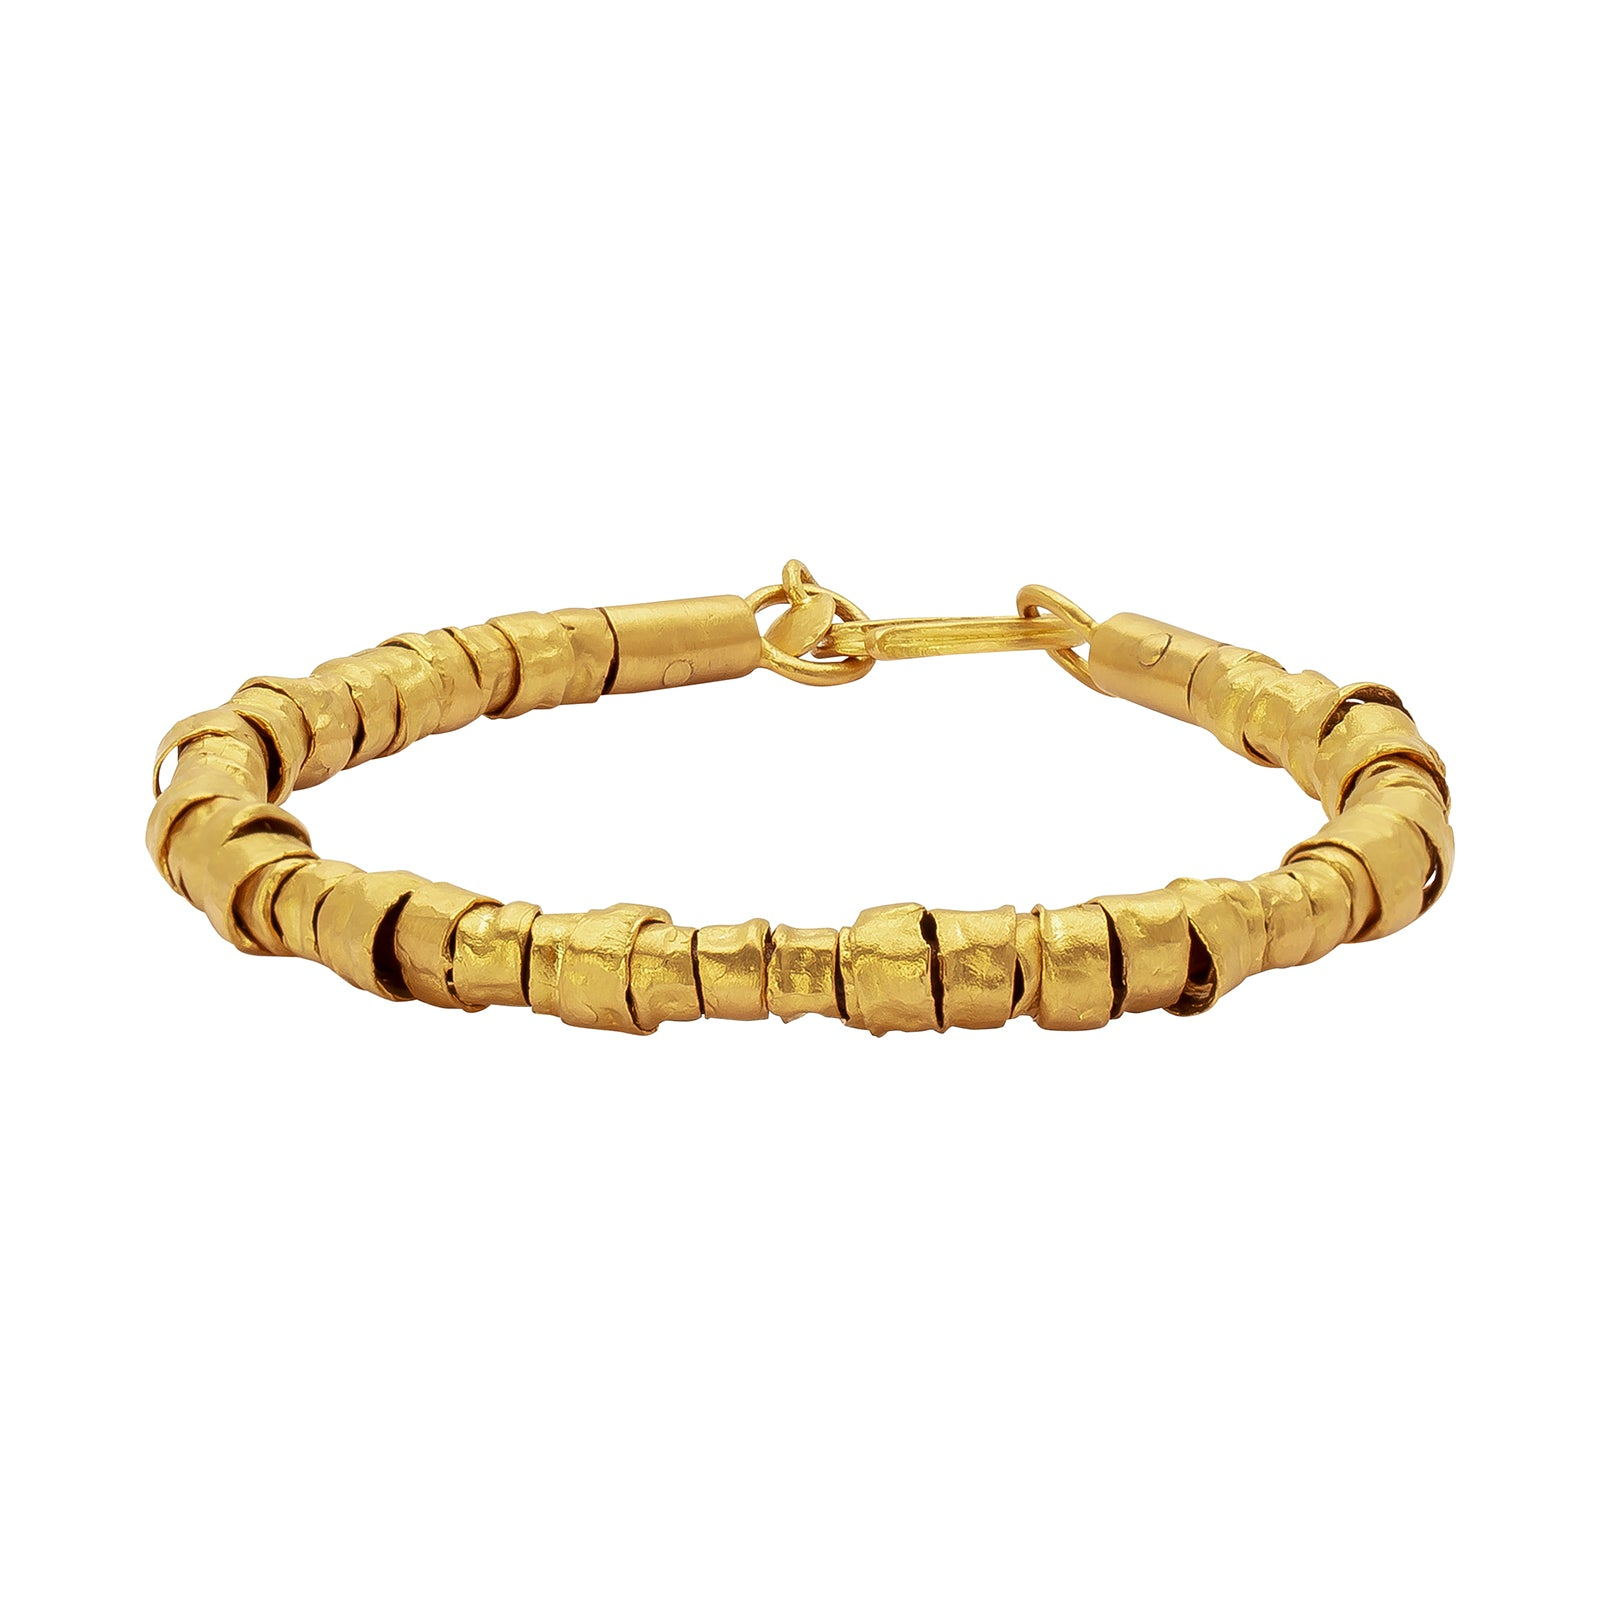 Eli Halili Gold Slider Bead & Leather Bracelet - Bracelets - Broken English Jewelry